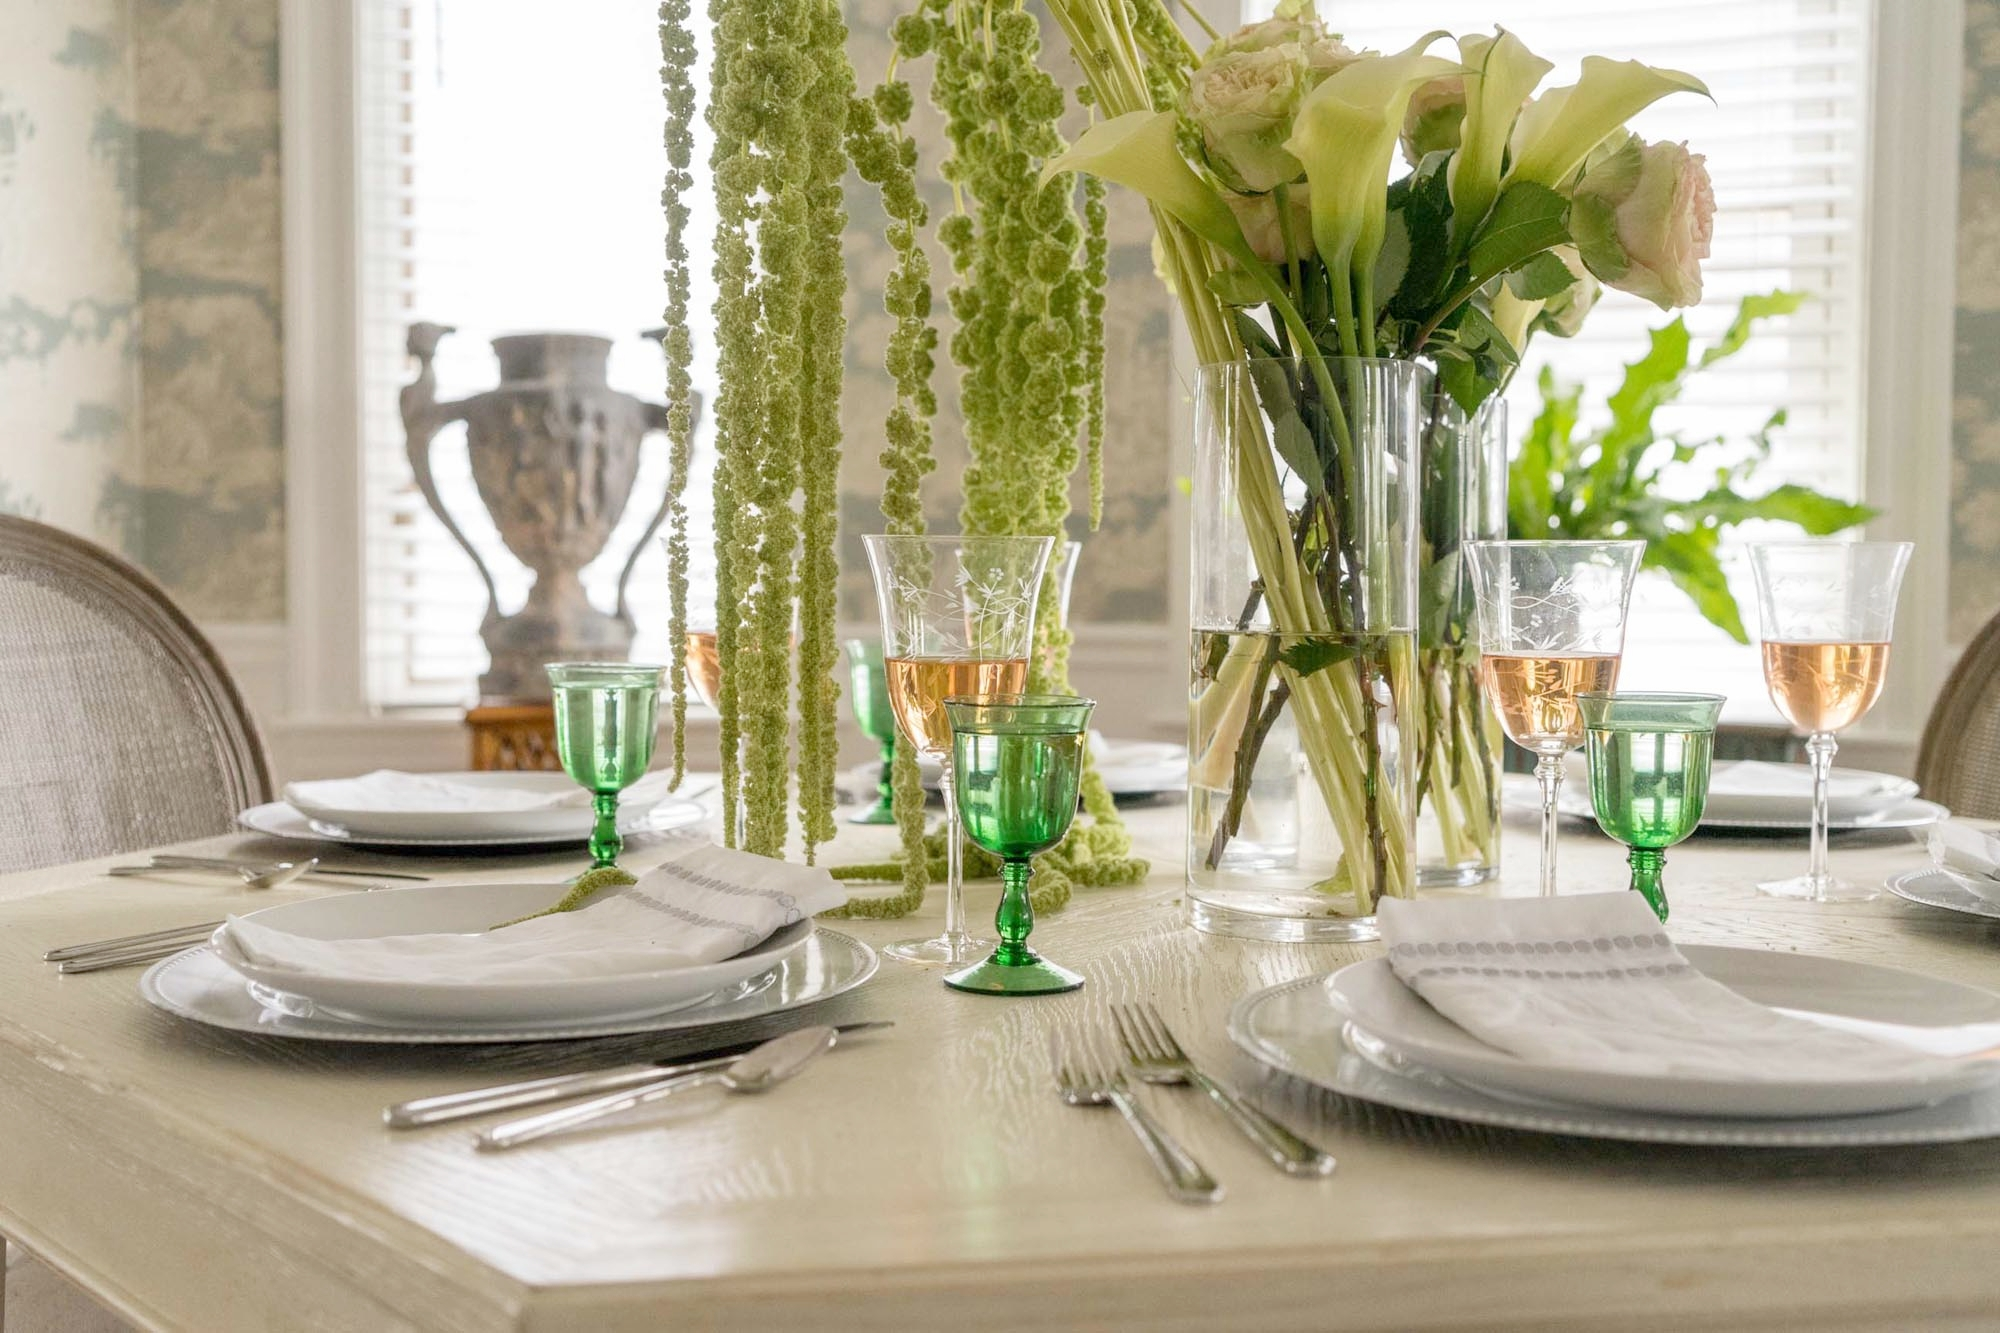 Dining Room Table set up with flowers and glass wine